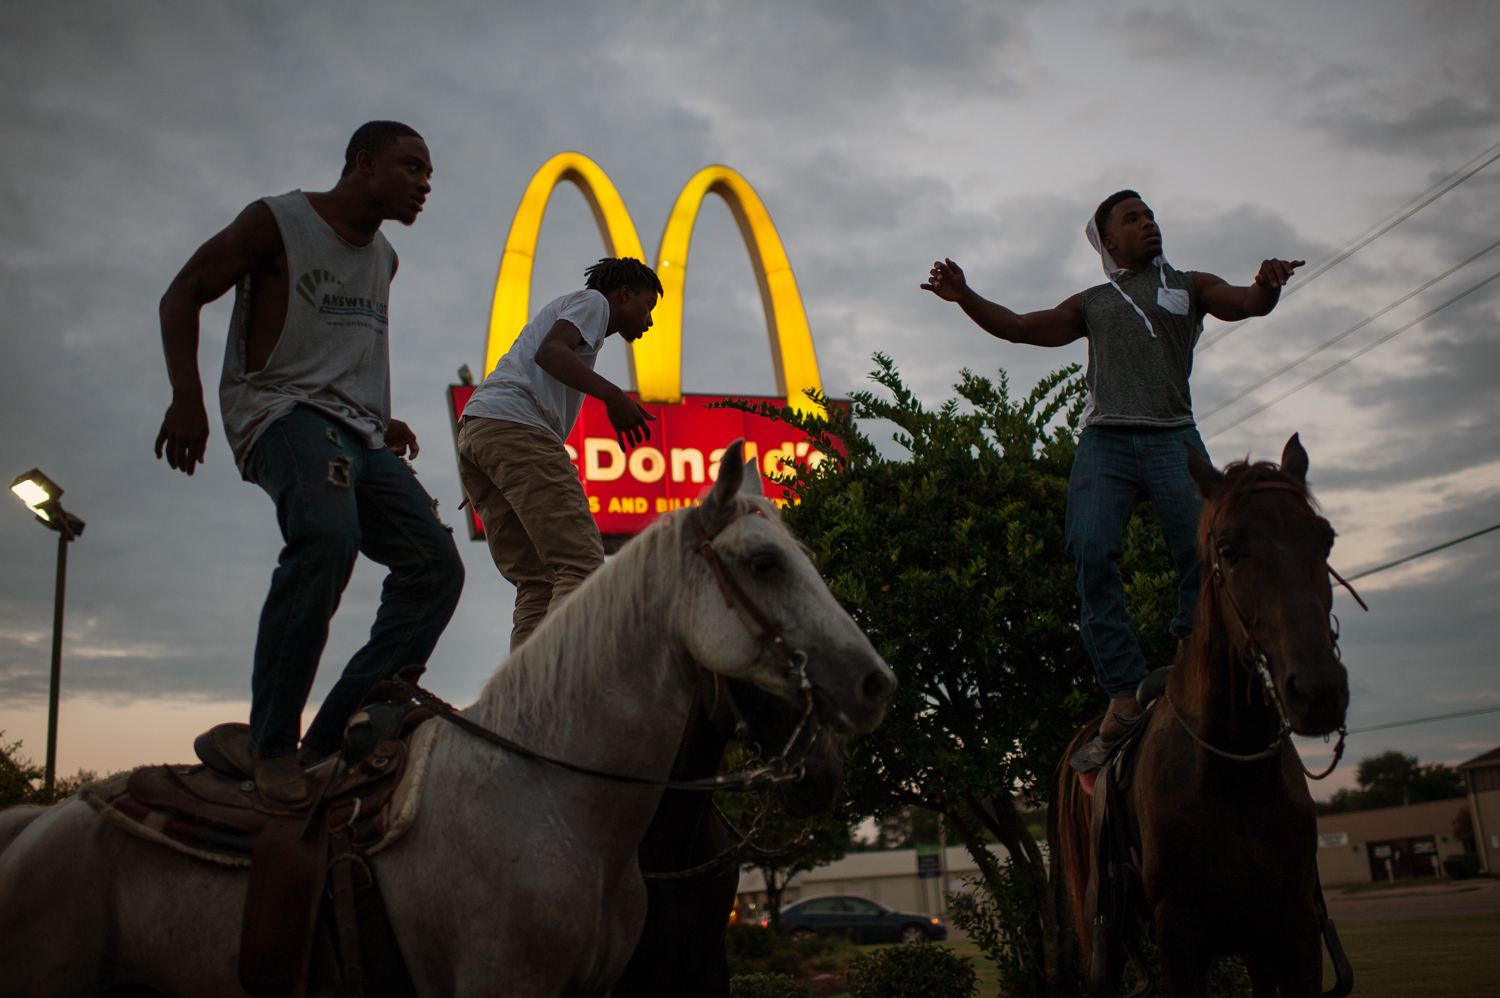 A group of young riders dance atop their horses in the McDonald's parking lot in Cleveland, Mississippi.